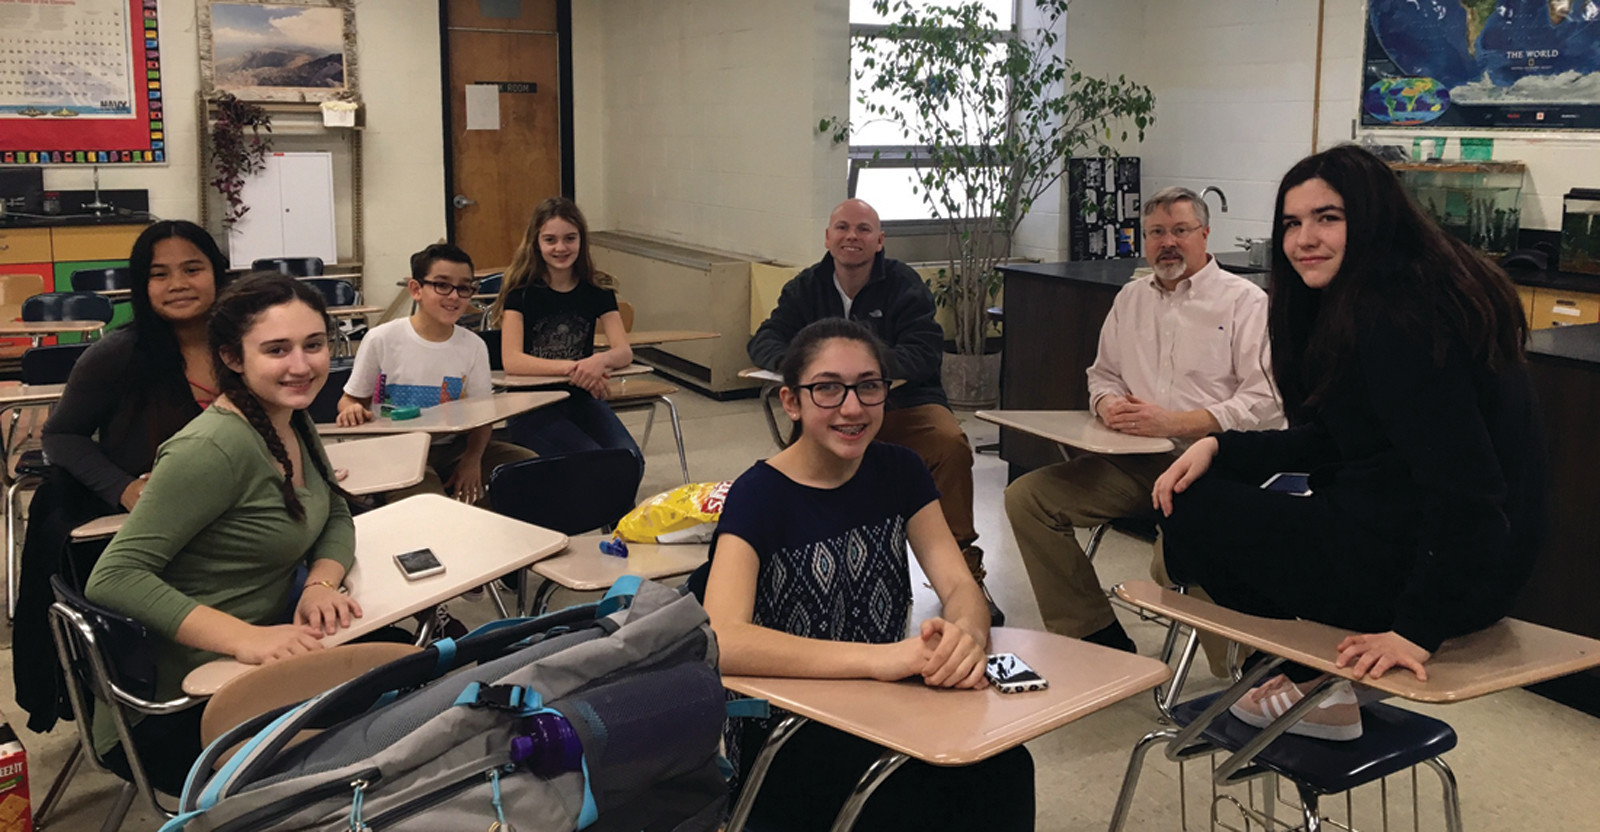 A HARD-WORKING GROUP: The Greenhouse Effect team consists of students Elizabeth Cowart, Julia Deal, Eric Garcia, Ava Kavanagh, Leah Phann and Jordan Simpson, and they work under the supervision of STEM Club faculty advisors Michael Blackburn and John Worthington.